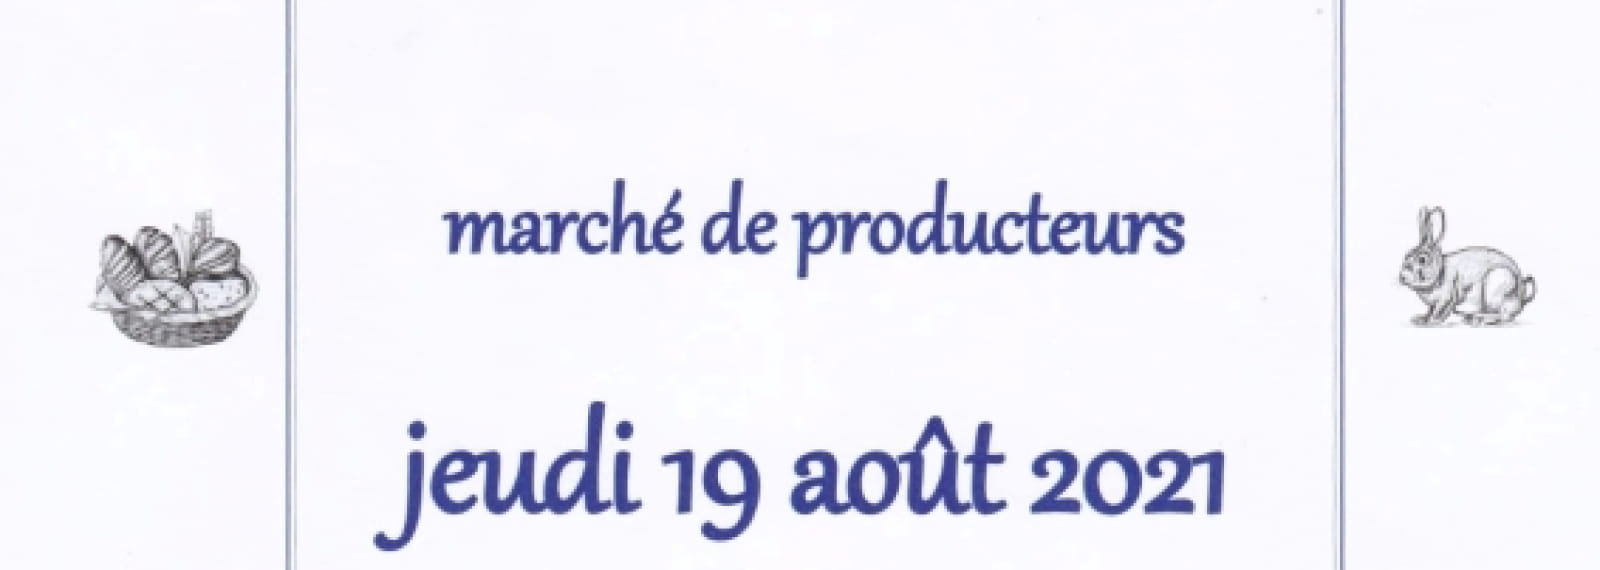 oulches marché